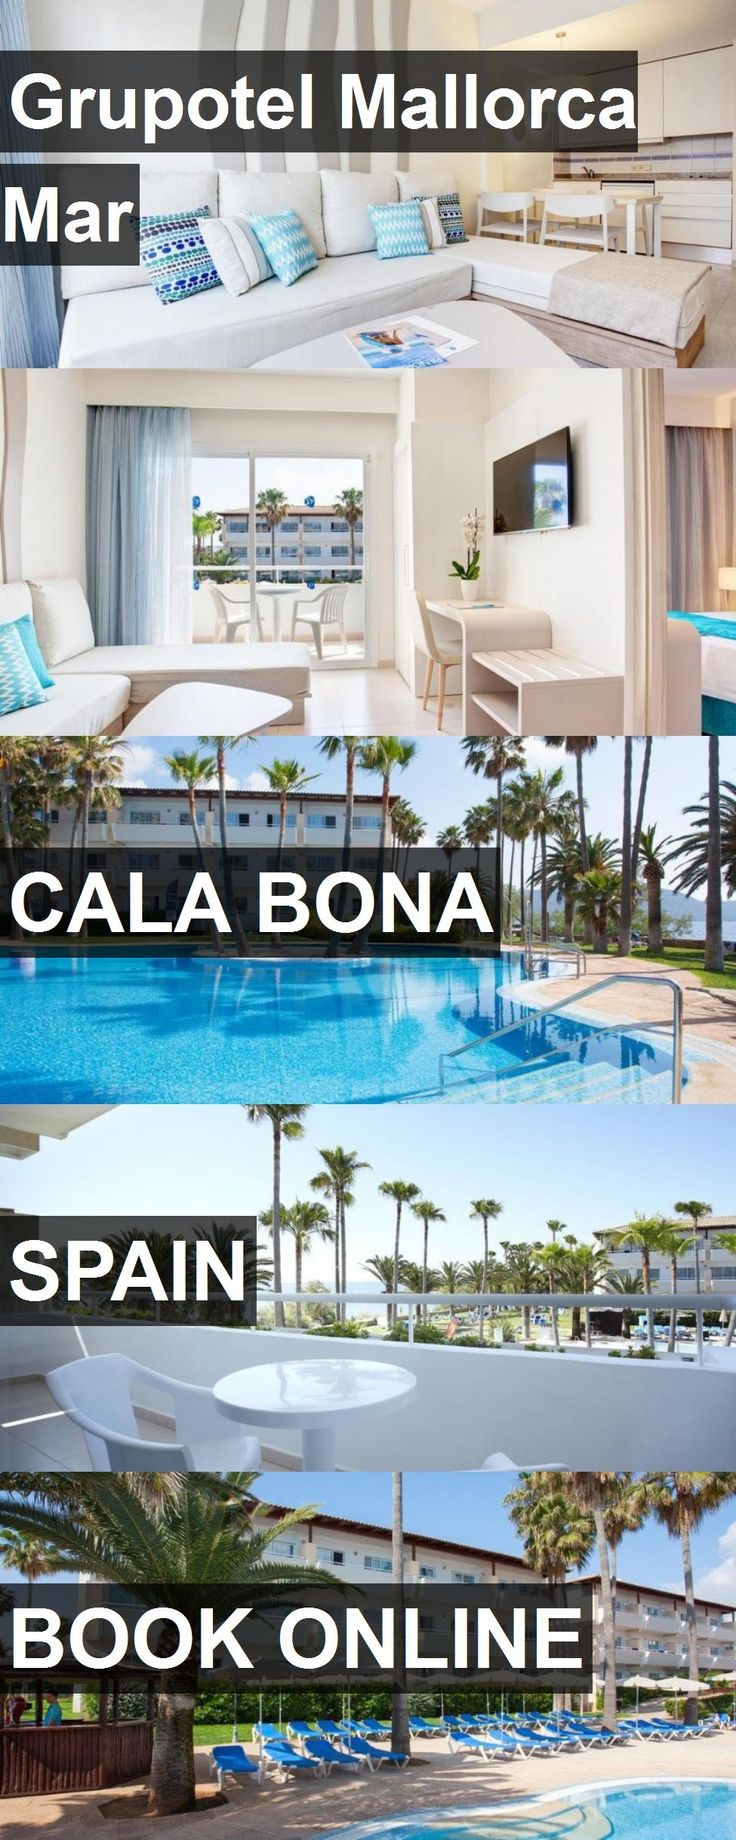 Hotel Grupotel Mallorca Mar in Cala Bona, Spain. For more information, photos, reviews and best prices please follow the link. #Spain #CalaBona #travel #vacation #hotel